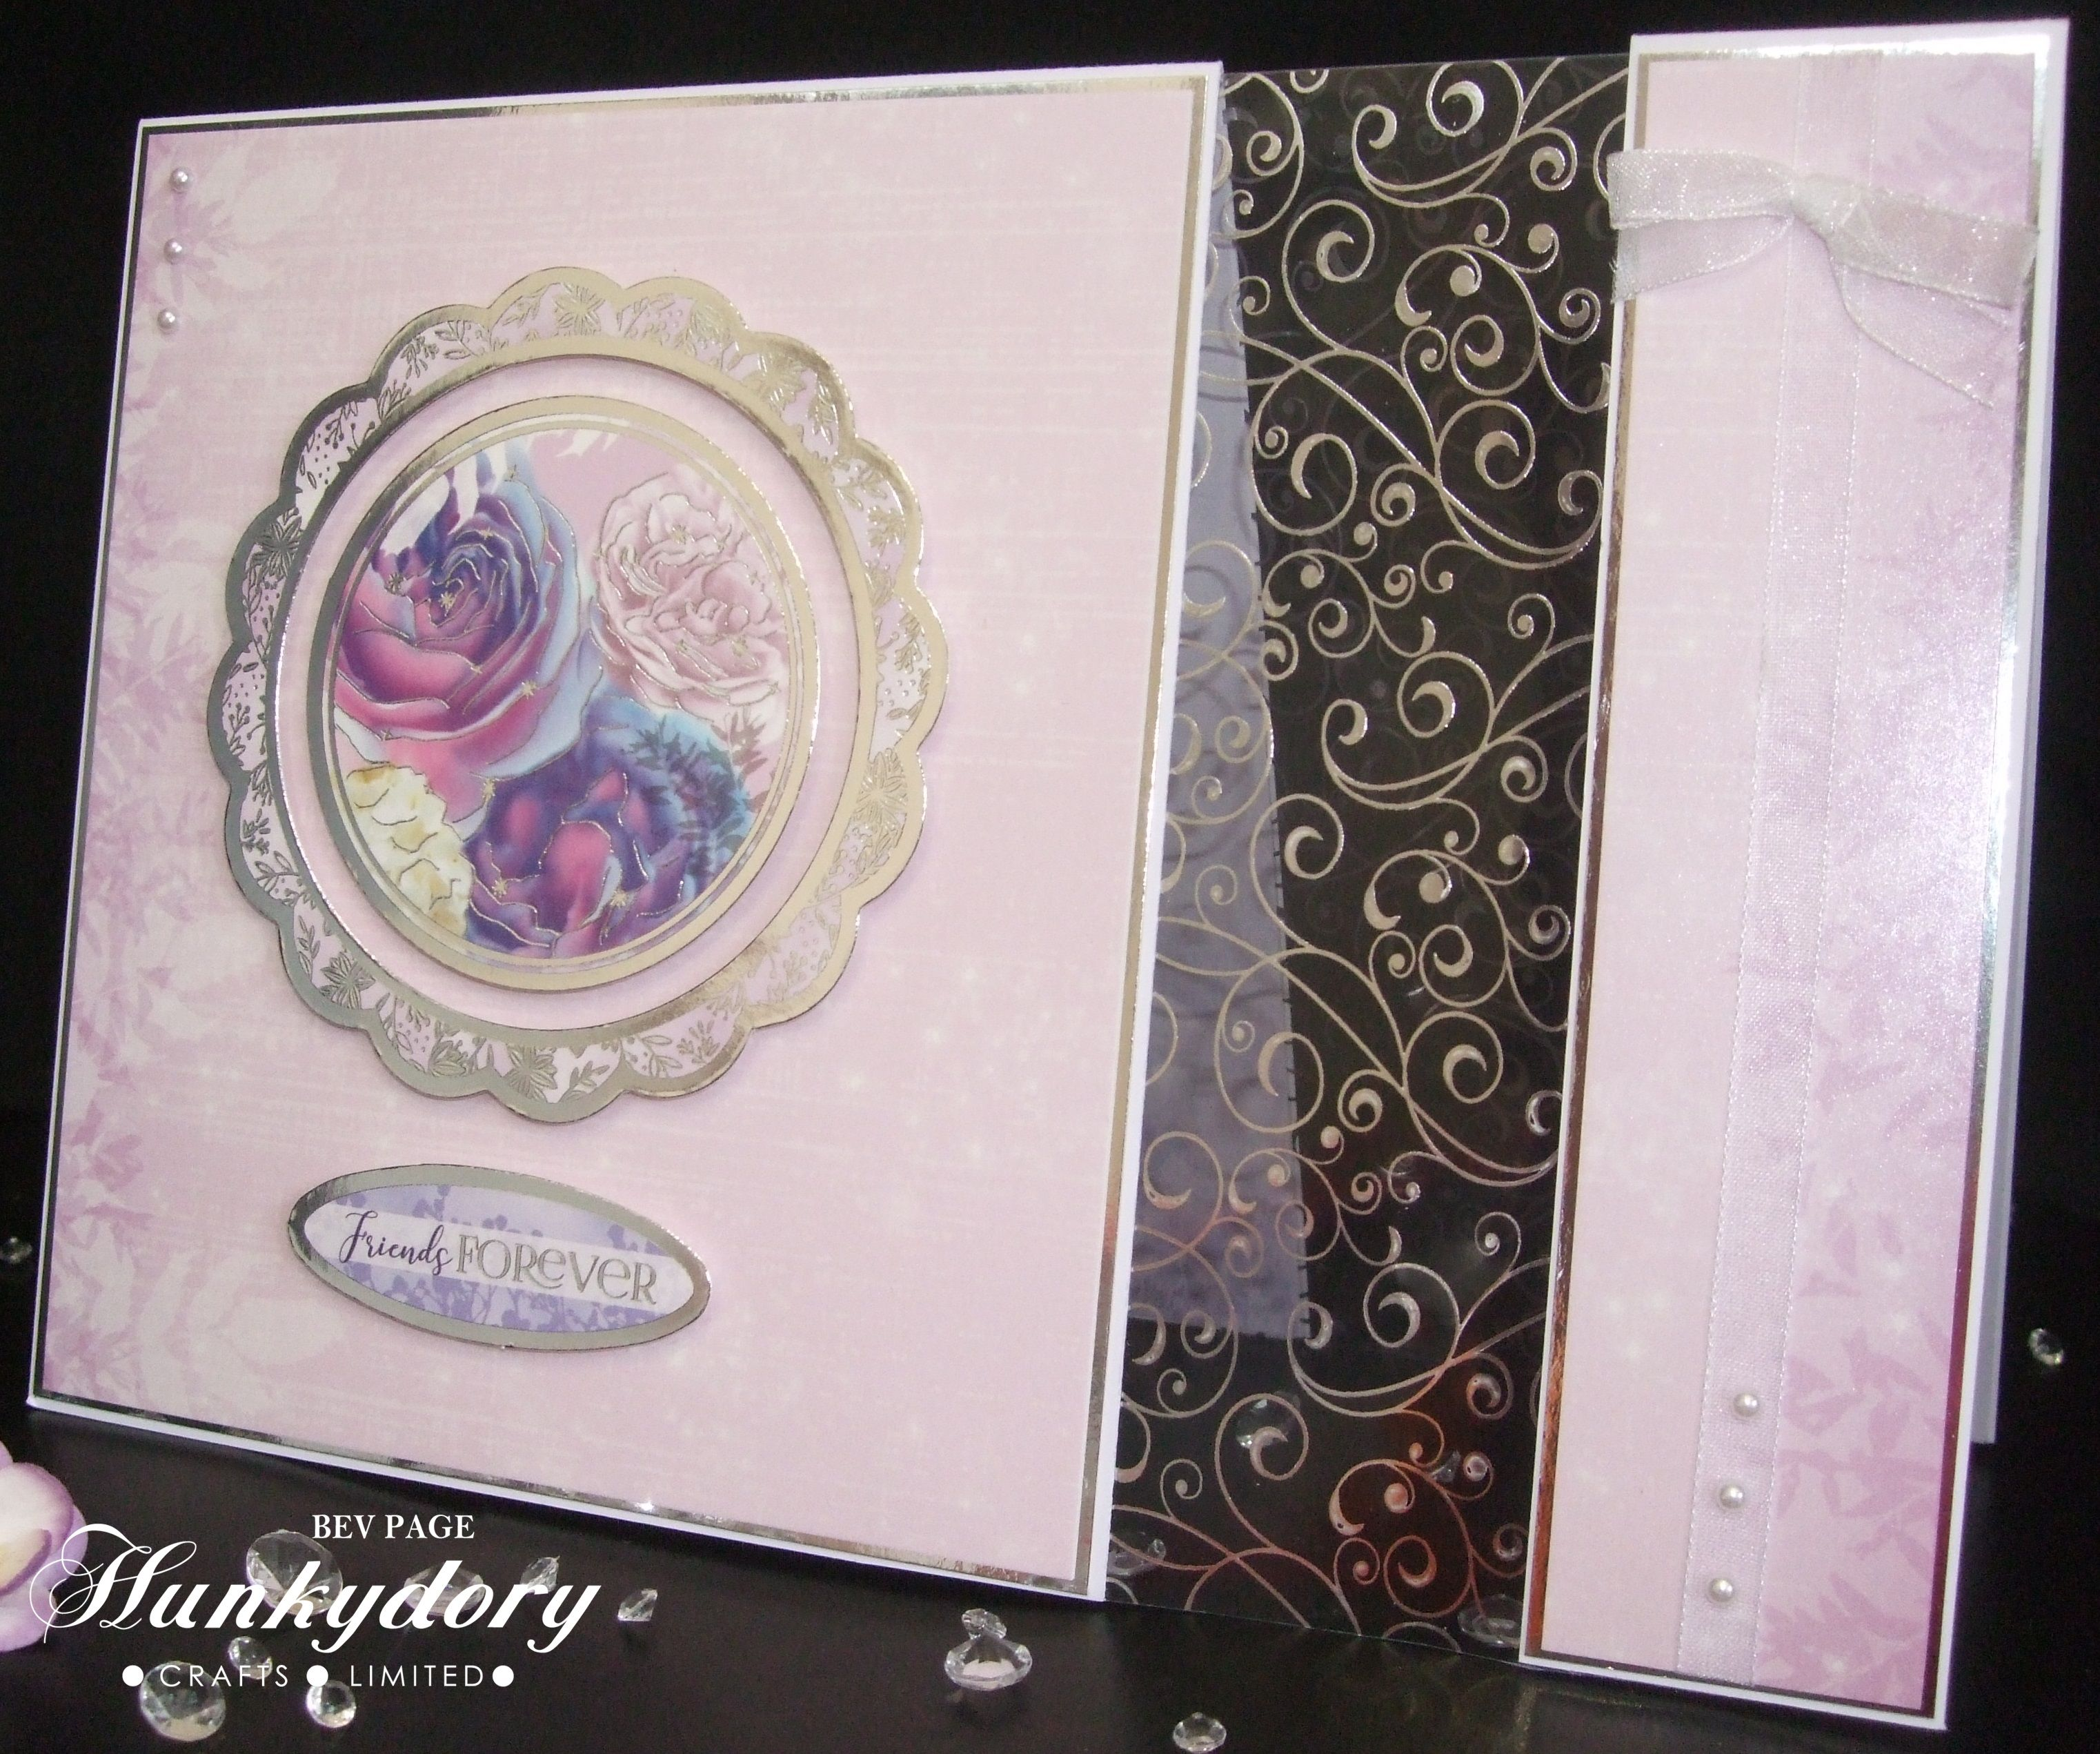 Acetate Panel Card Using Items From The Hunkydory Floral Shimmer